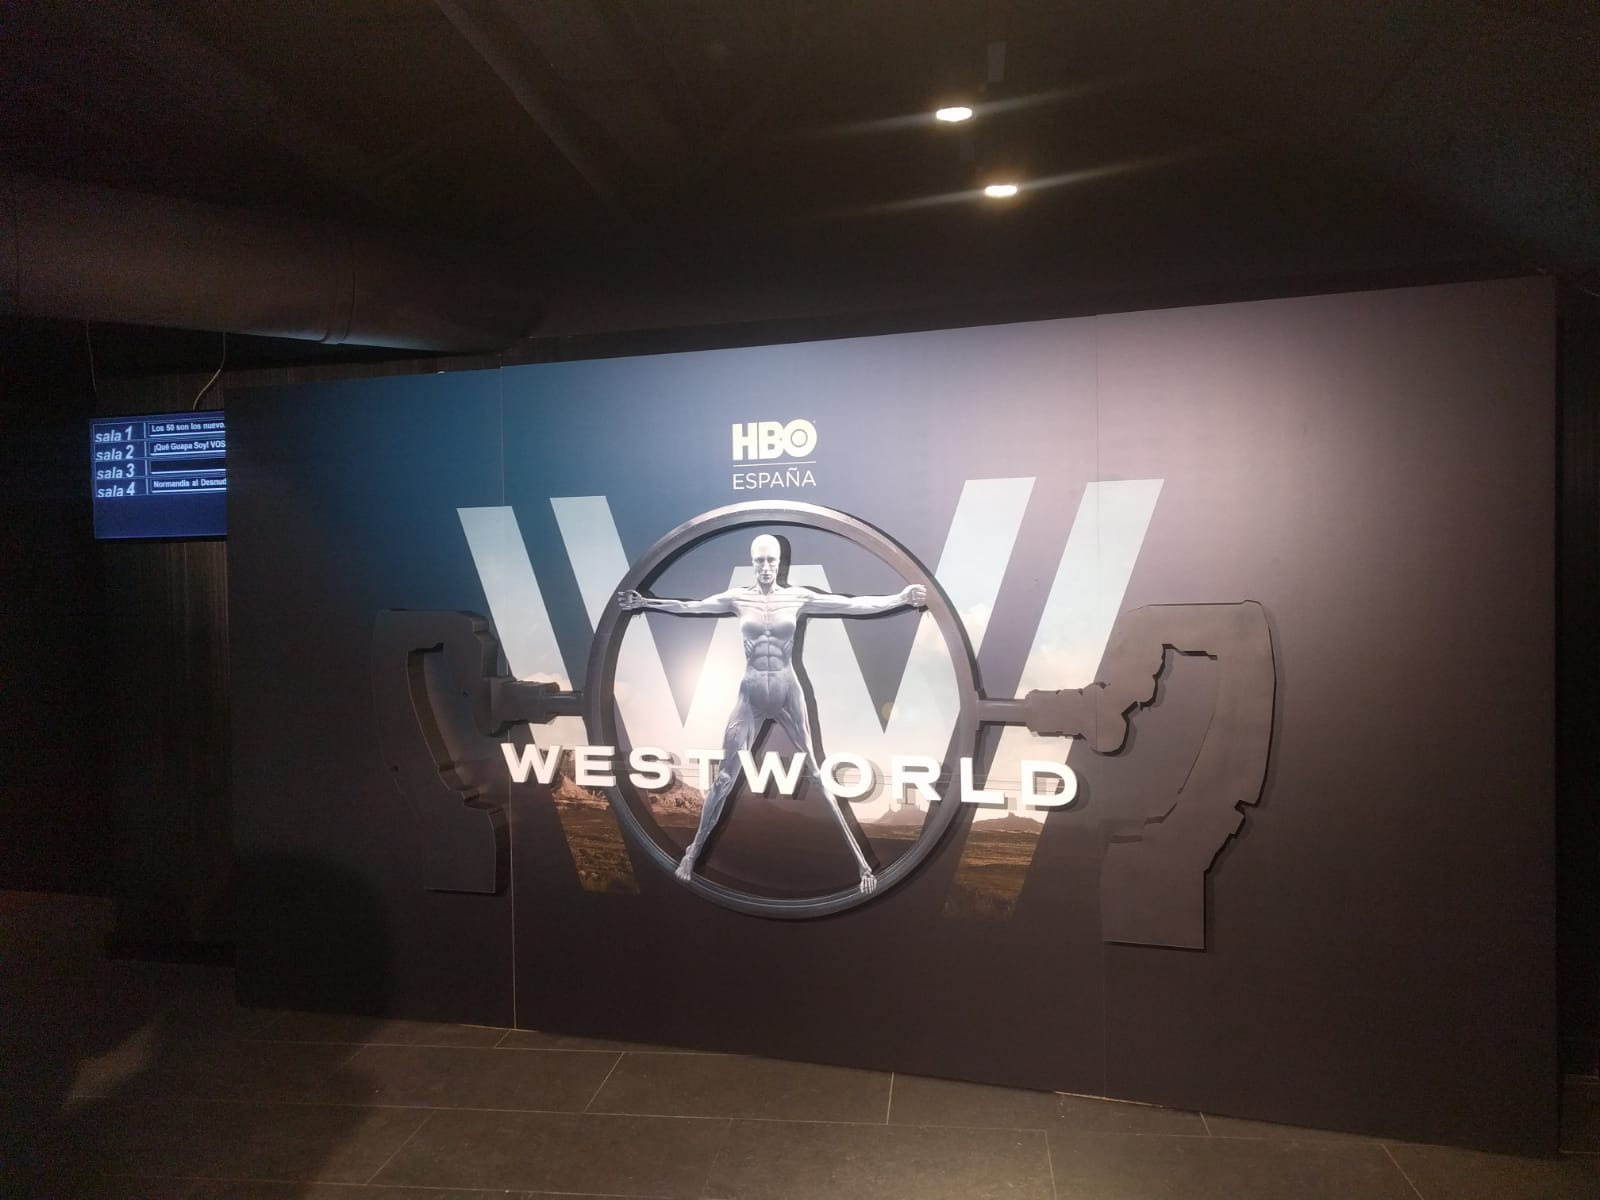 Westworld screening 4